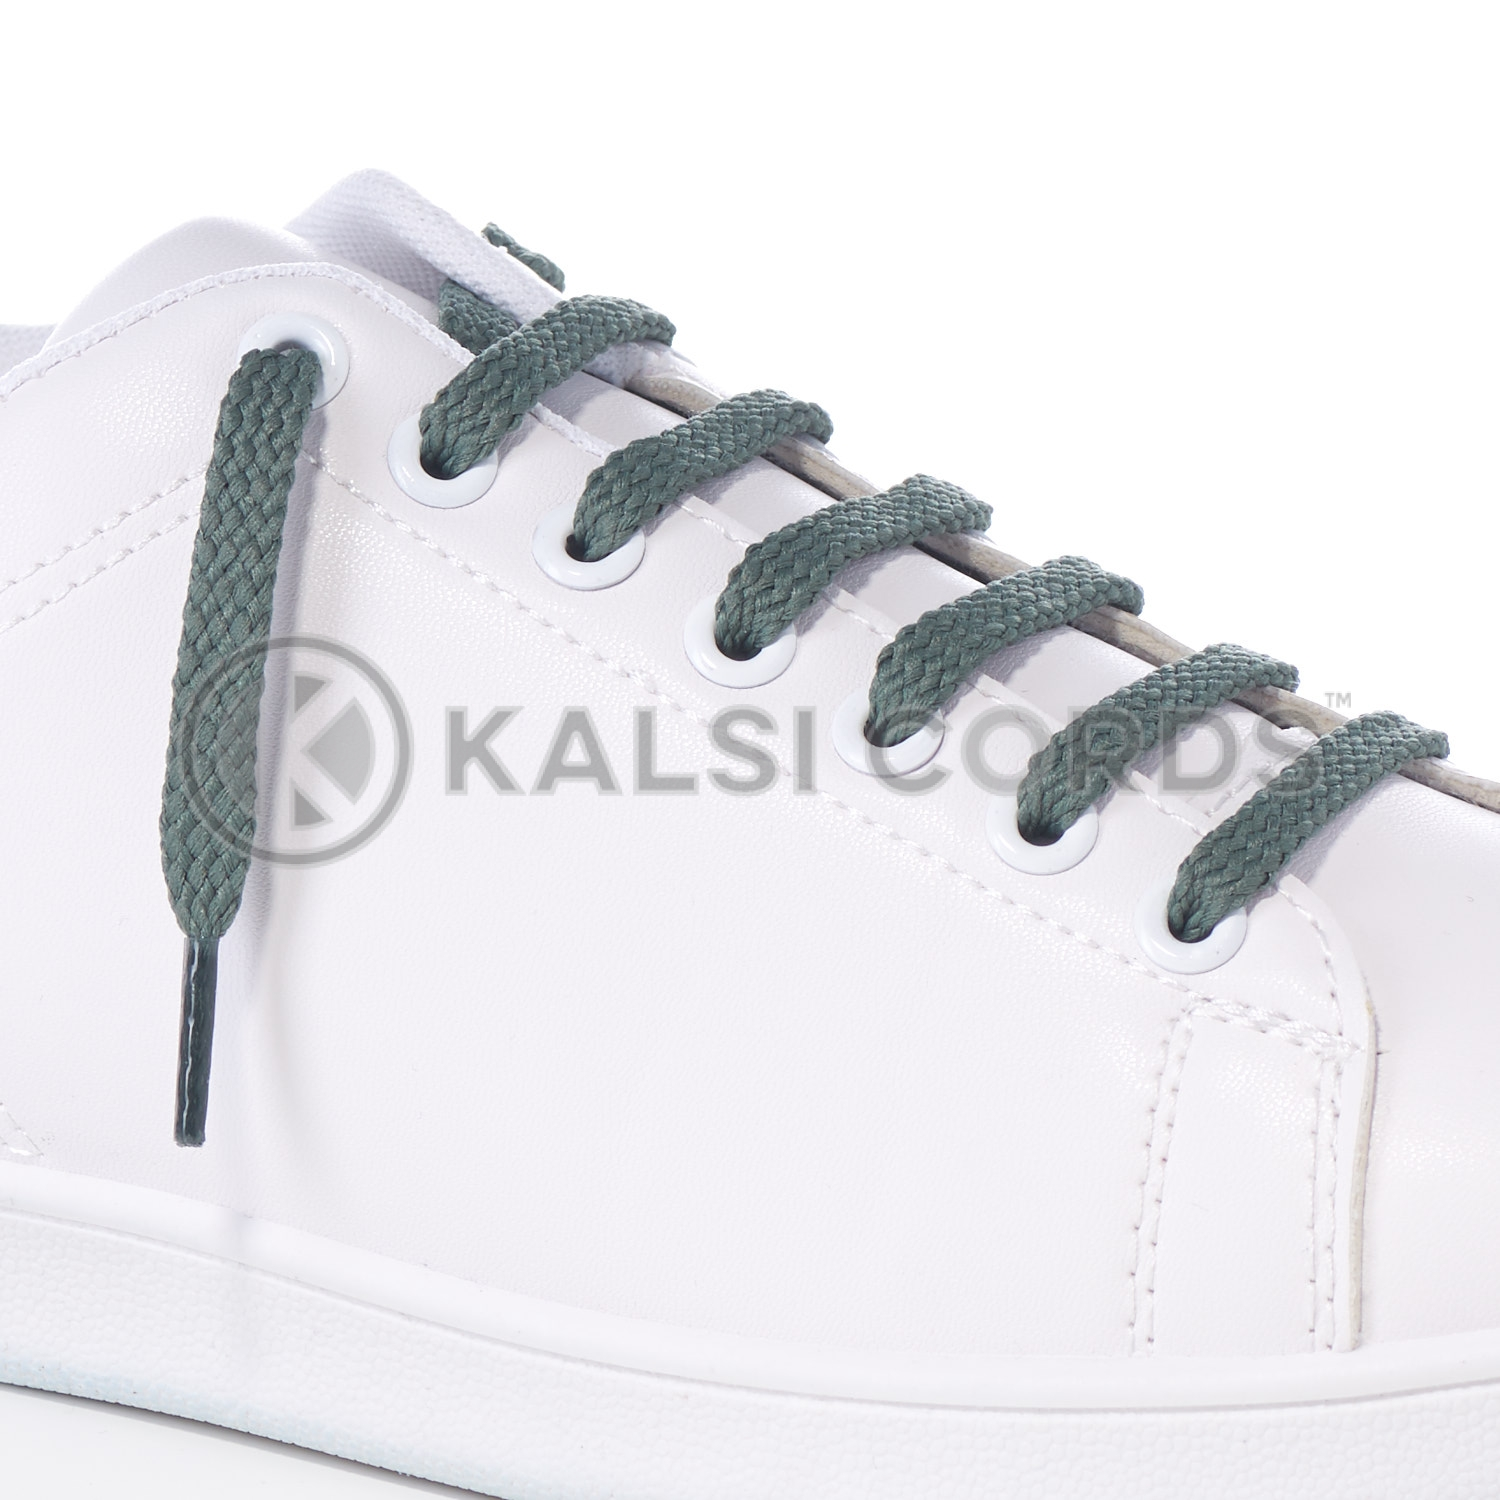 R1472 Thyme Sports Flat Shoe Laces Kalsi Cords